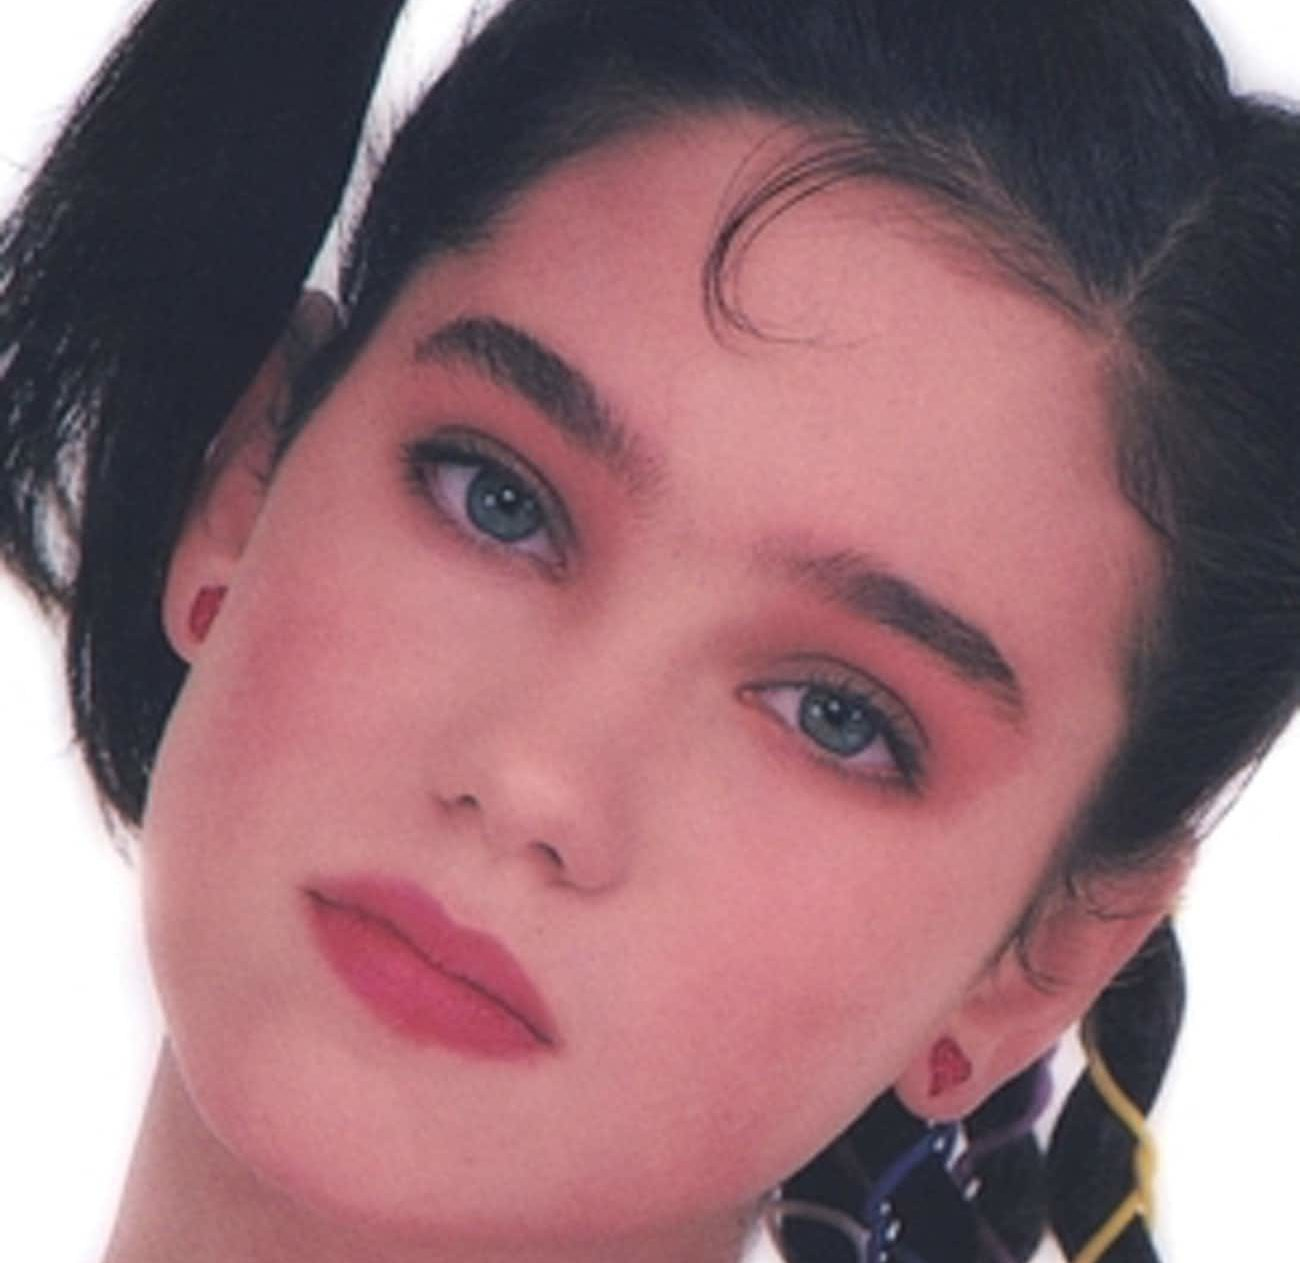 young jennifer connelly as teenager closeup shot photo u1 e1609949760476 20 Things You Probably Didn't Know About Jennifer Connelly